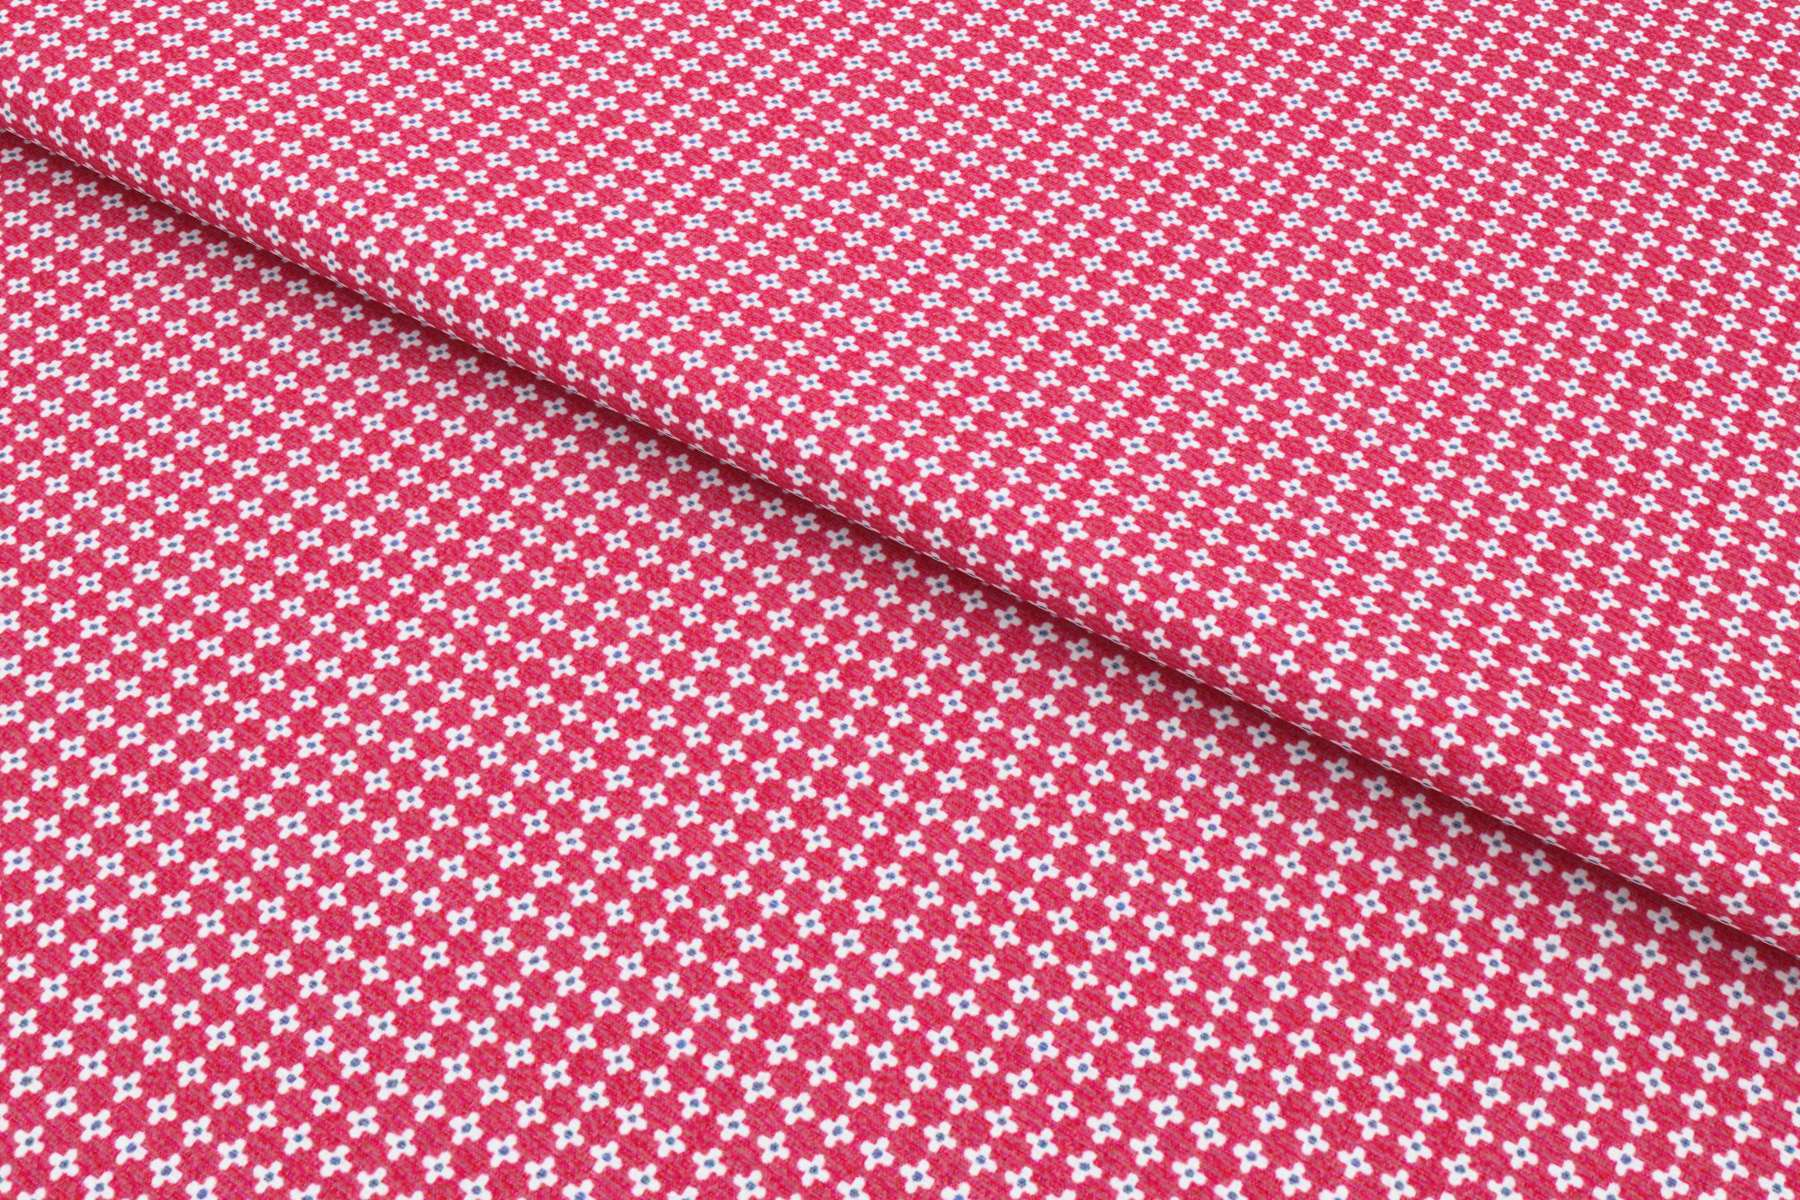 Red Foulard print Shirt Fabric 84020